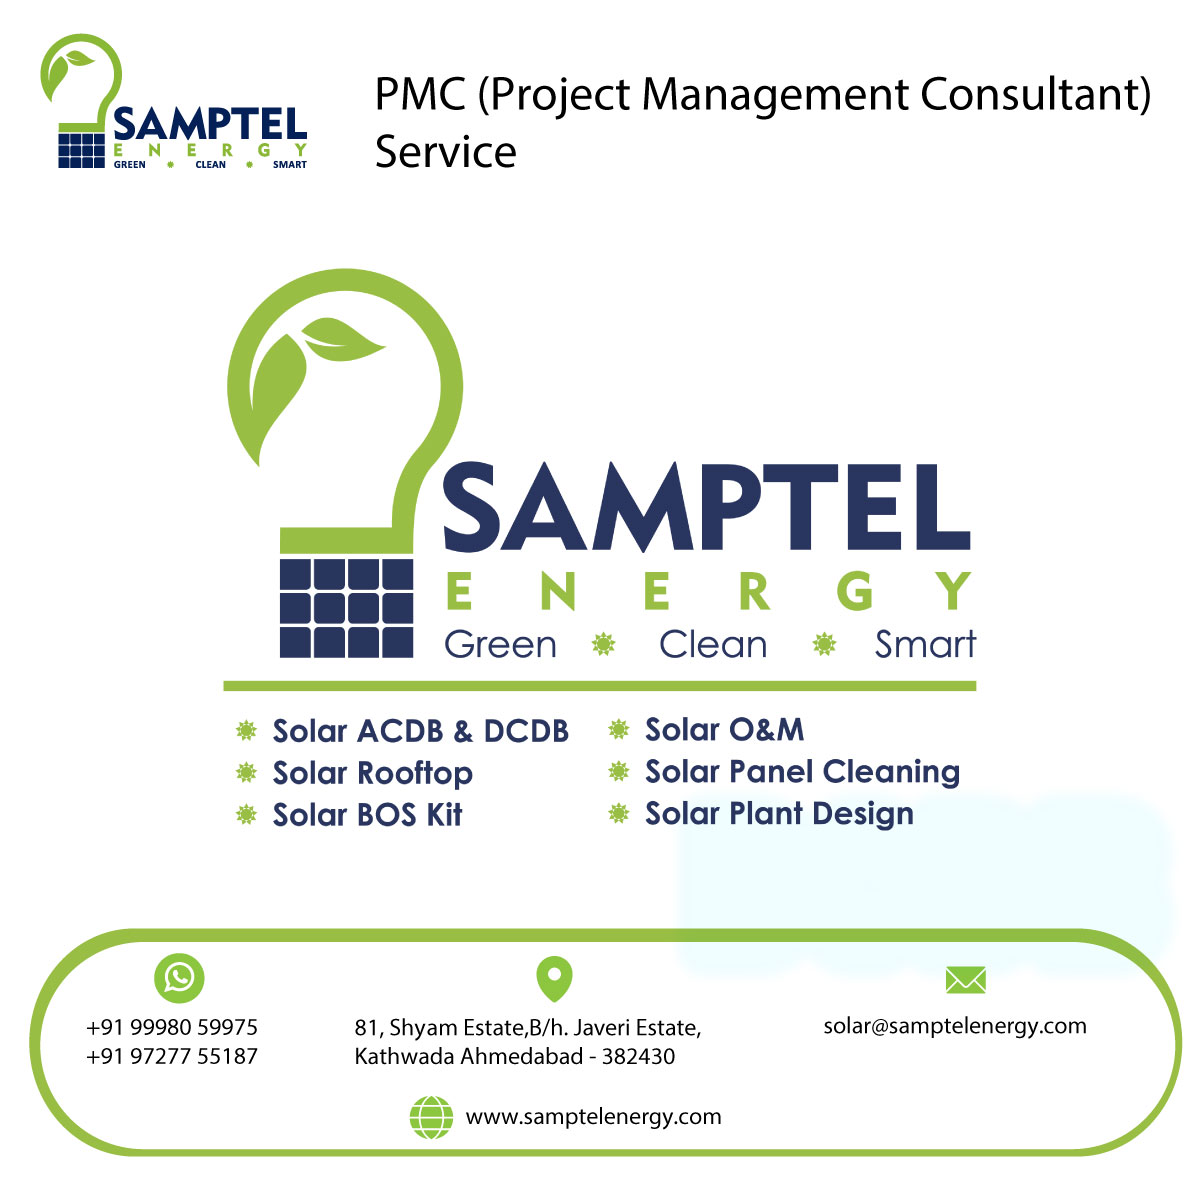 PMC (Project Management Consultant) Service